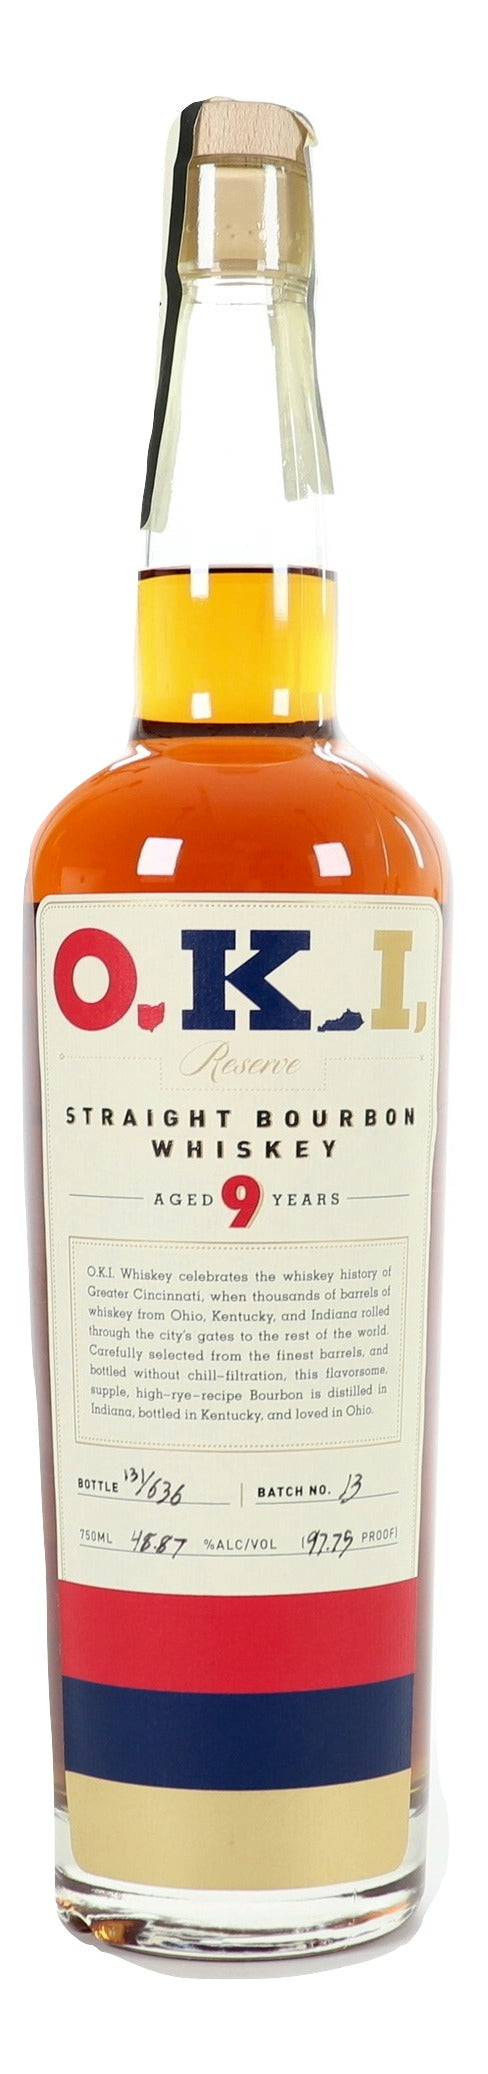 O.K.I. 9 Year Old Straight Bourbon Whiskey For Sale - NativeSpiritsOnline